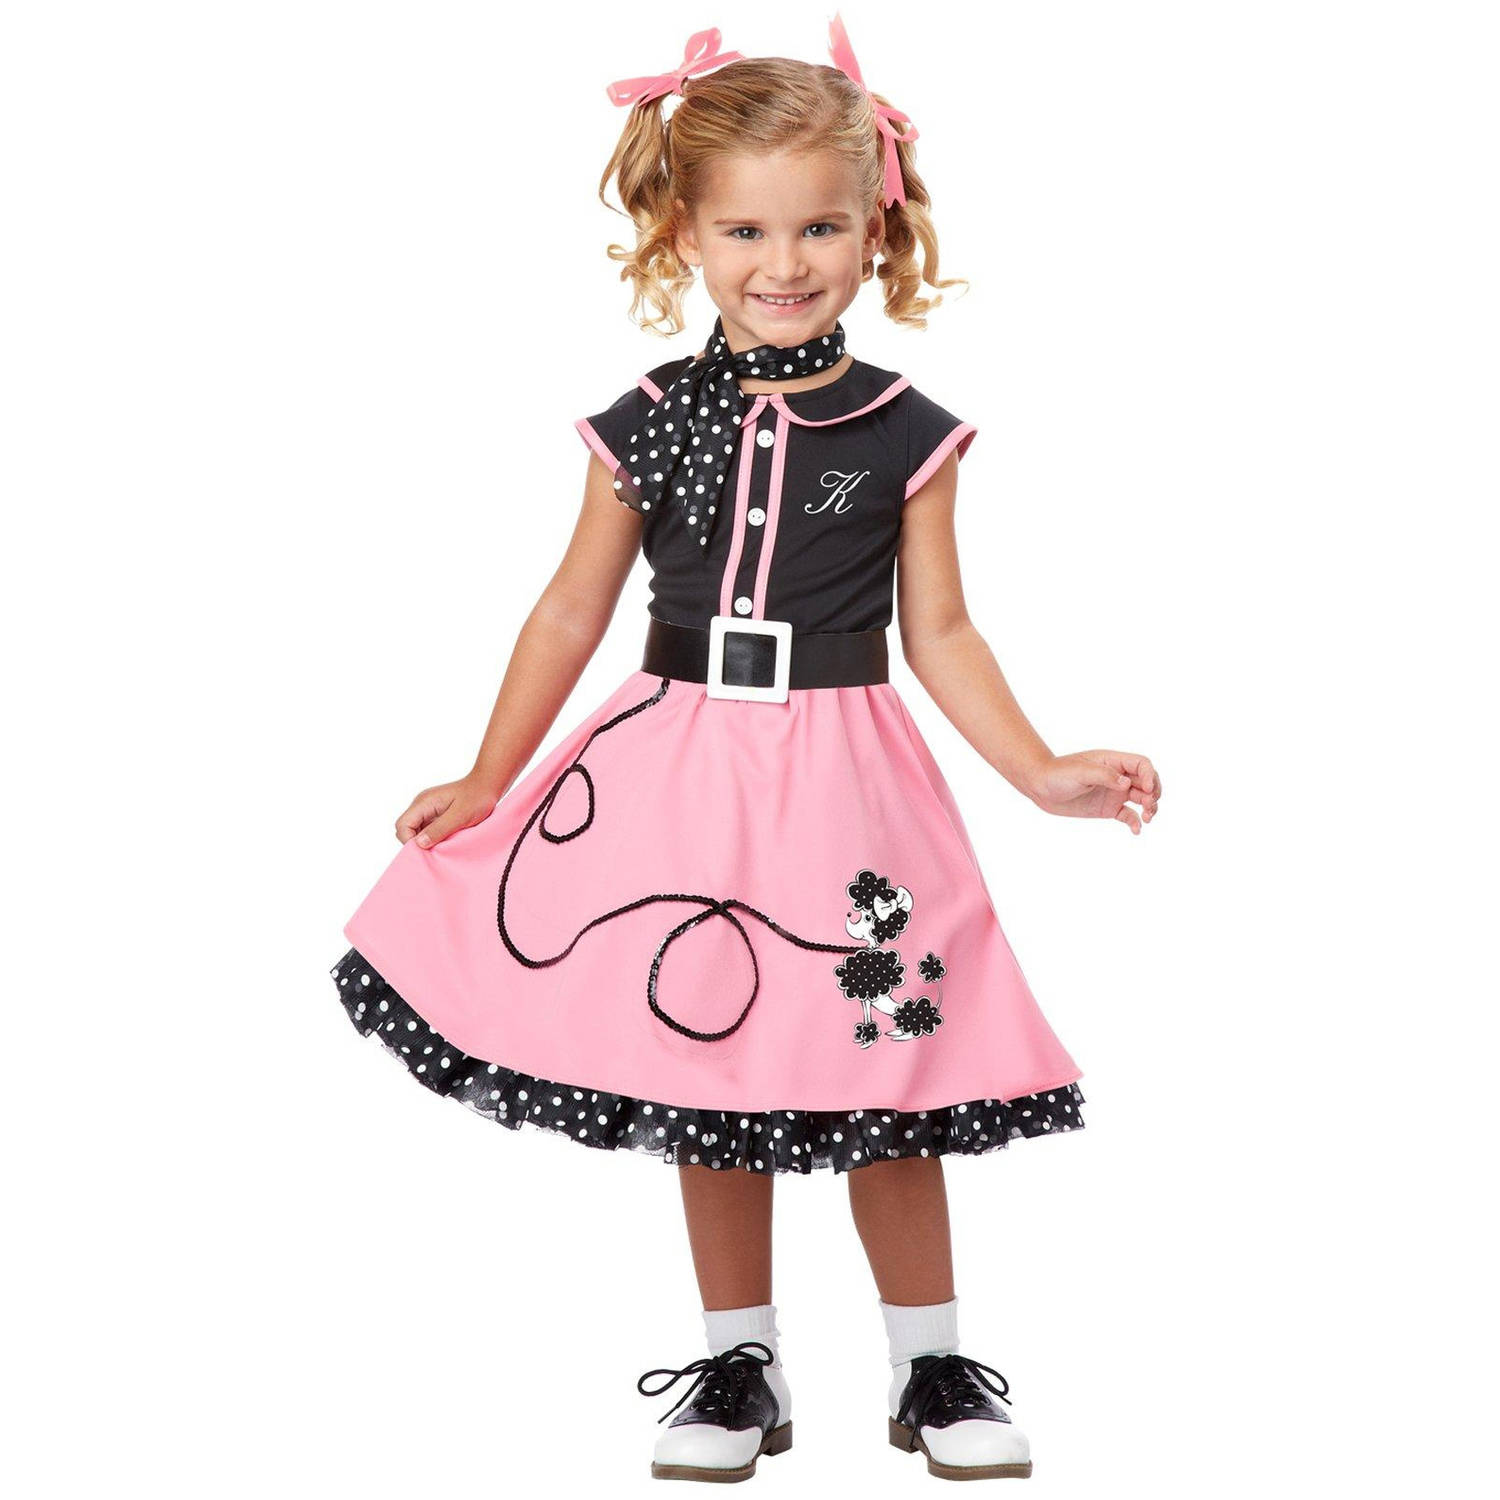 50's Poodle Cutie Toddler Halloween Costume, 3T-4T